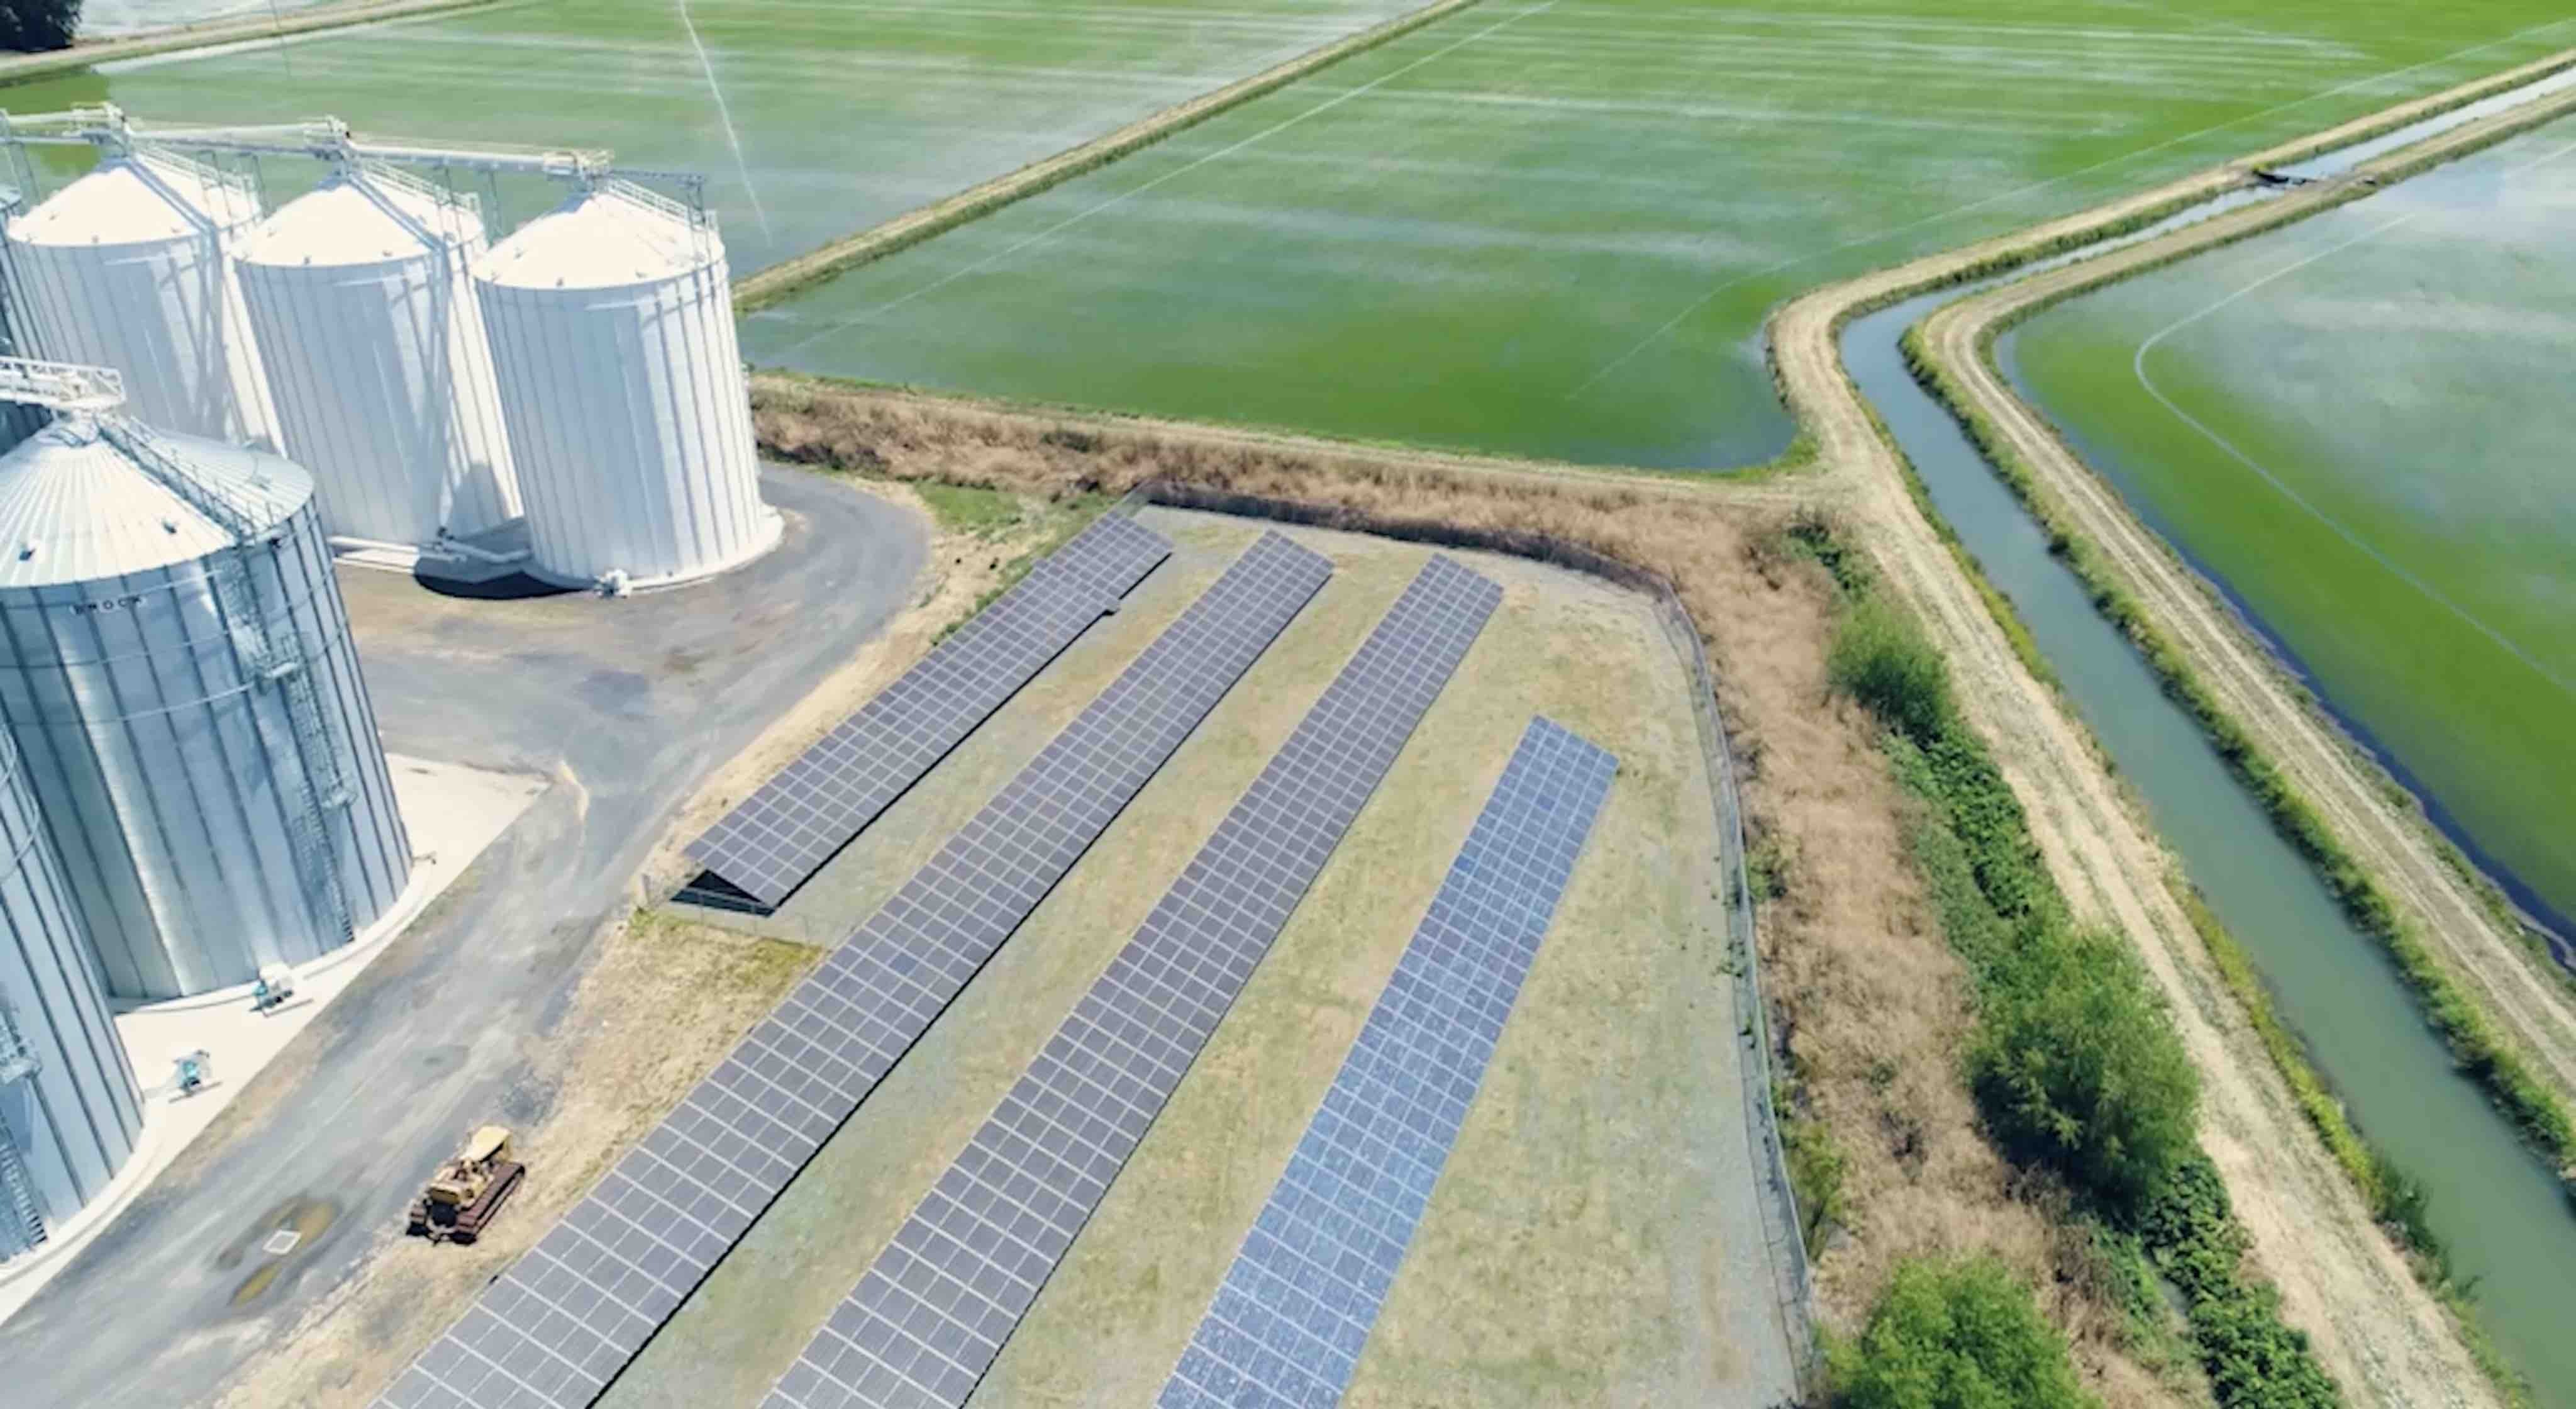 Solar panels, rice bins, and green rice fields at Lundberg Family Farms.